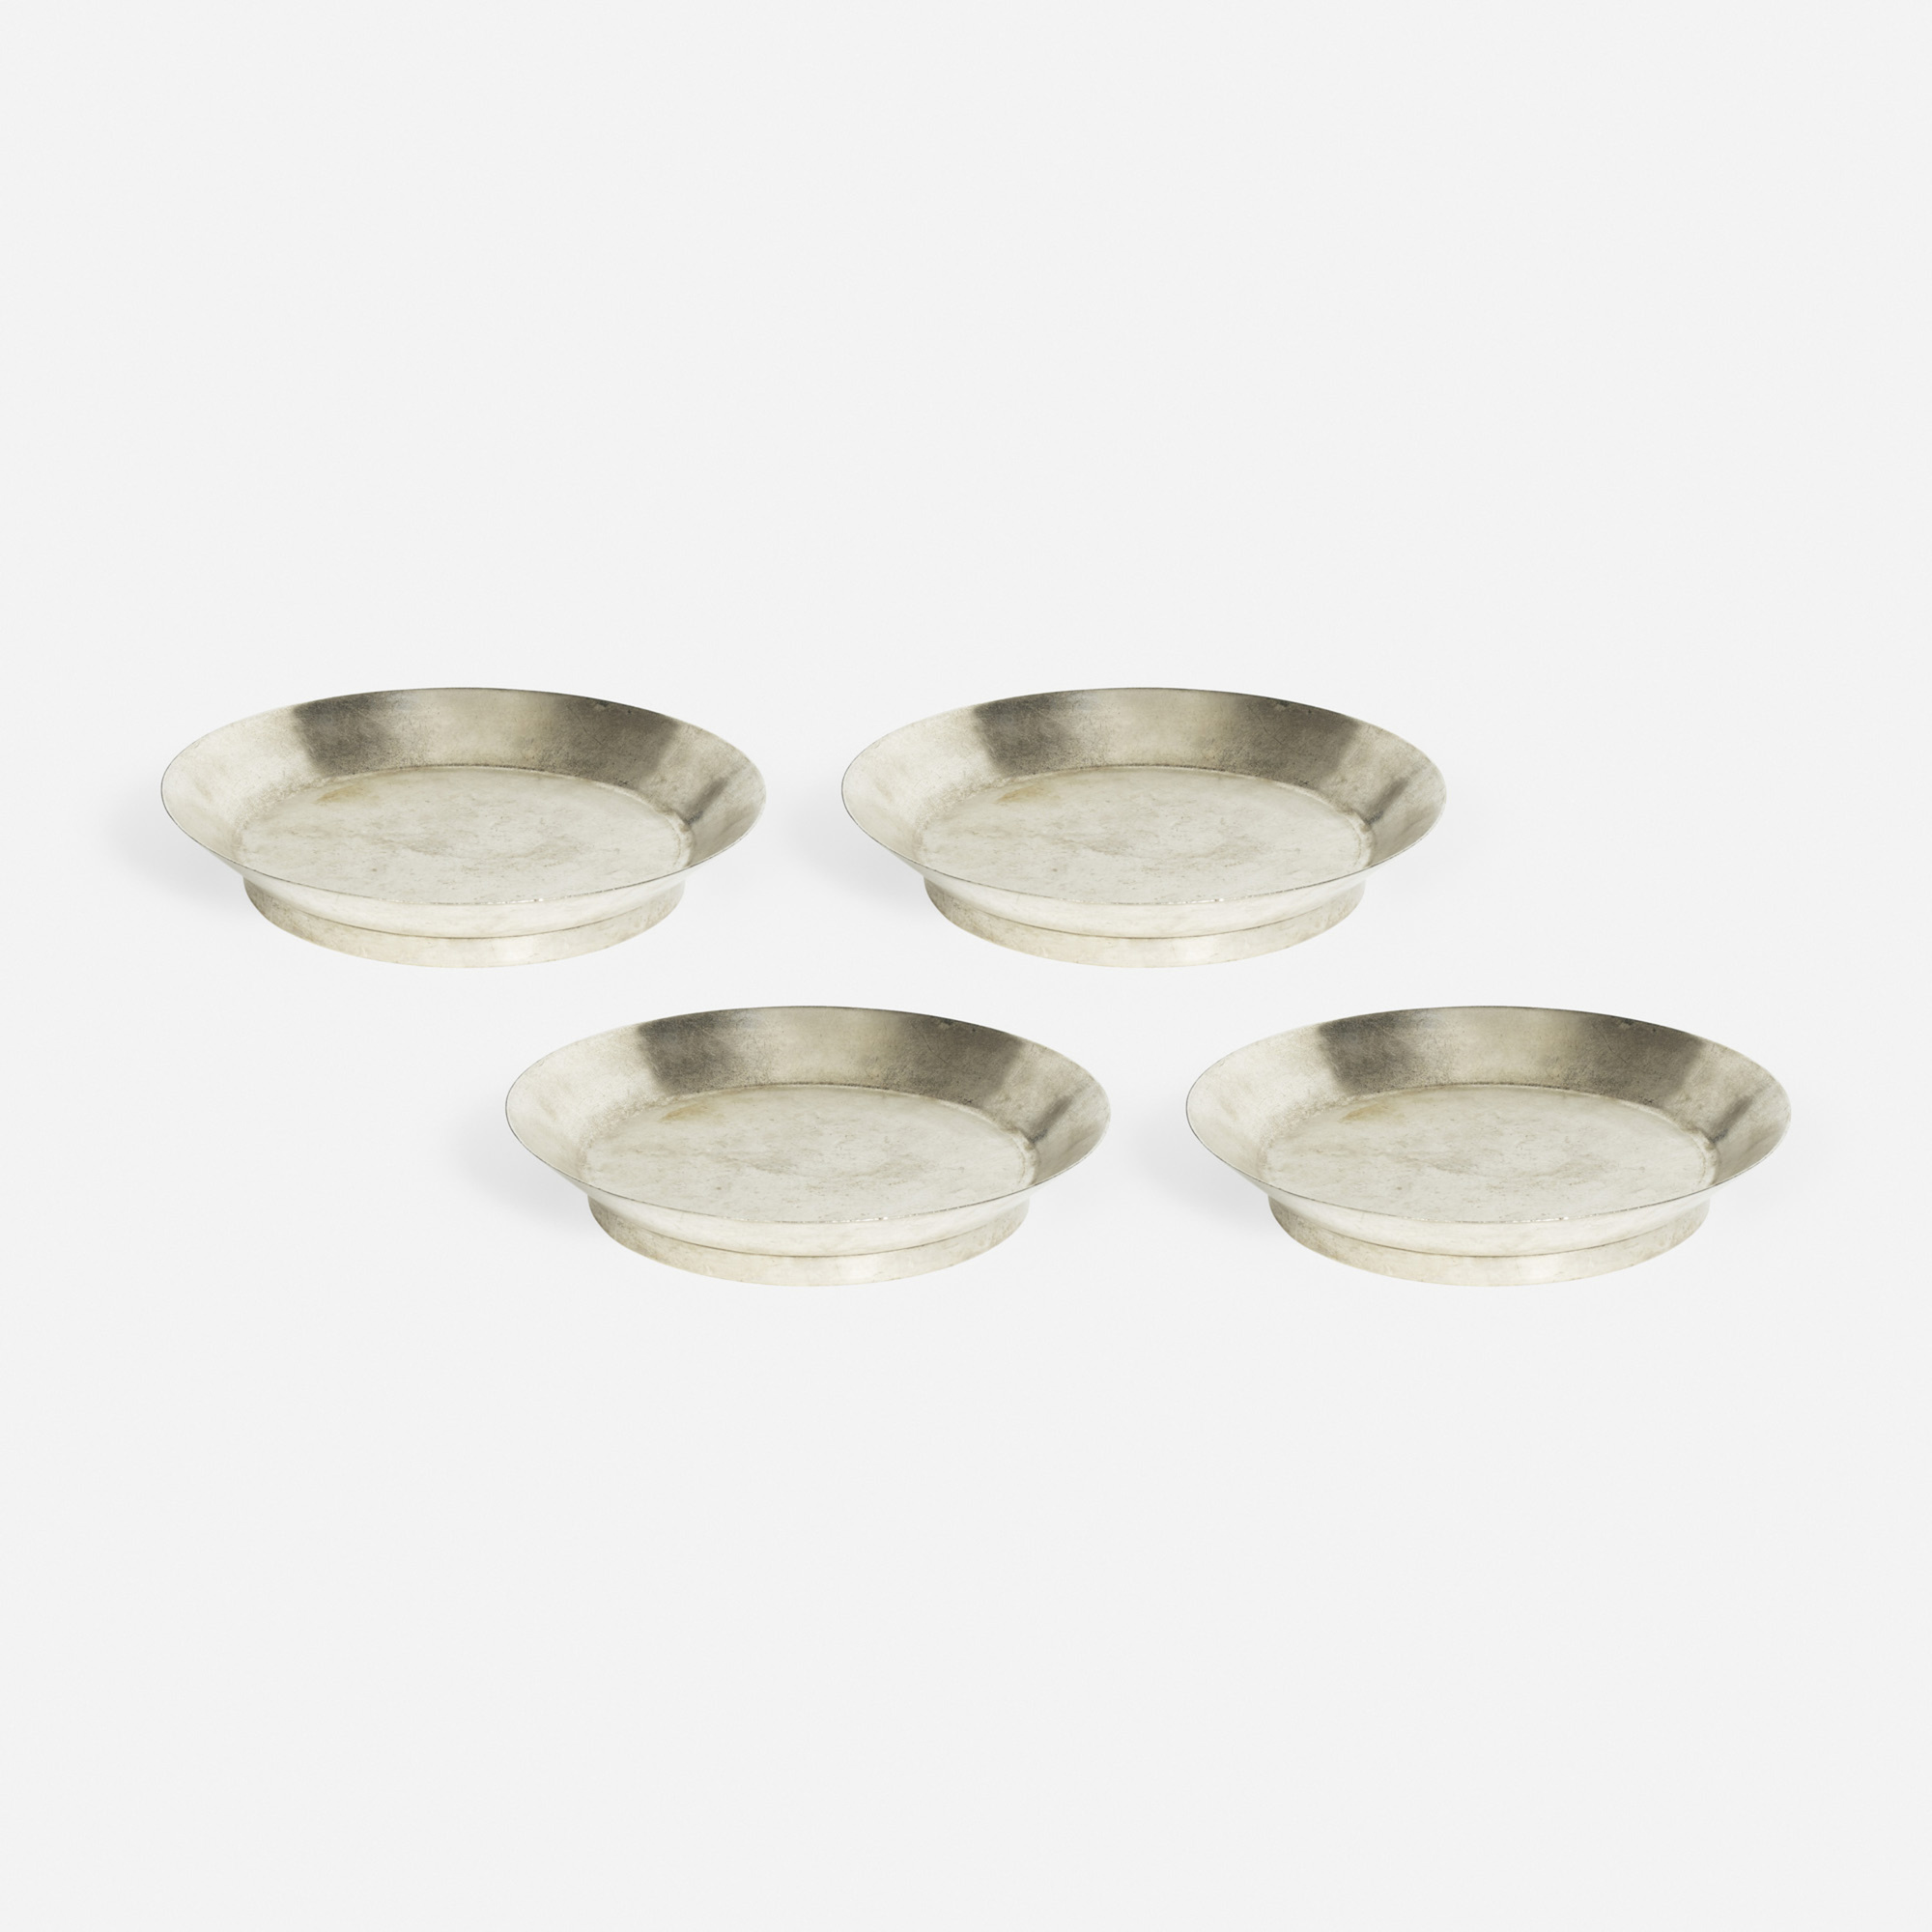 435: Garth and Ada Louise Huxtable / Oyster dishes from The Four Seasons, set of four (1 of 1)